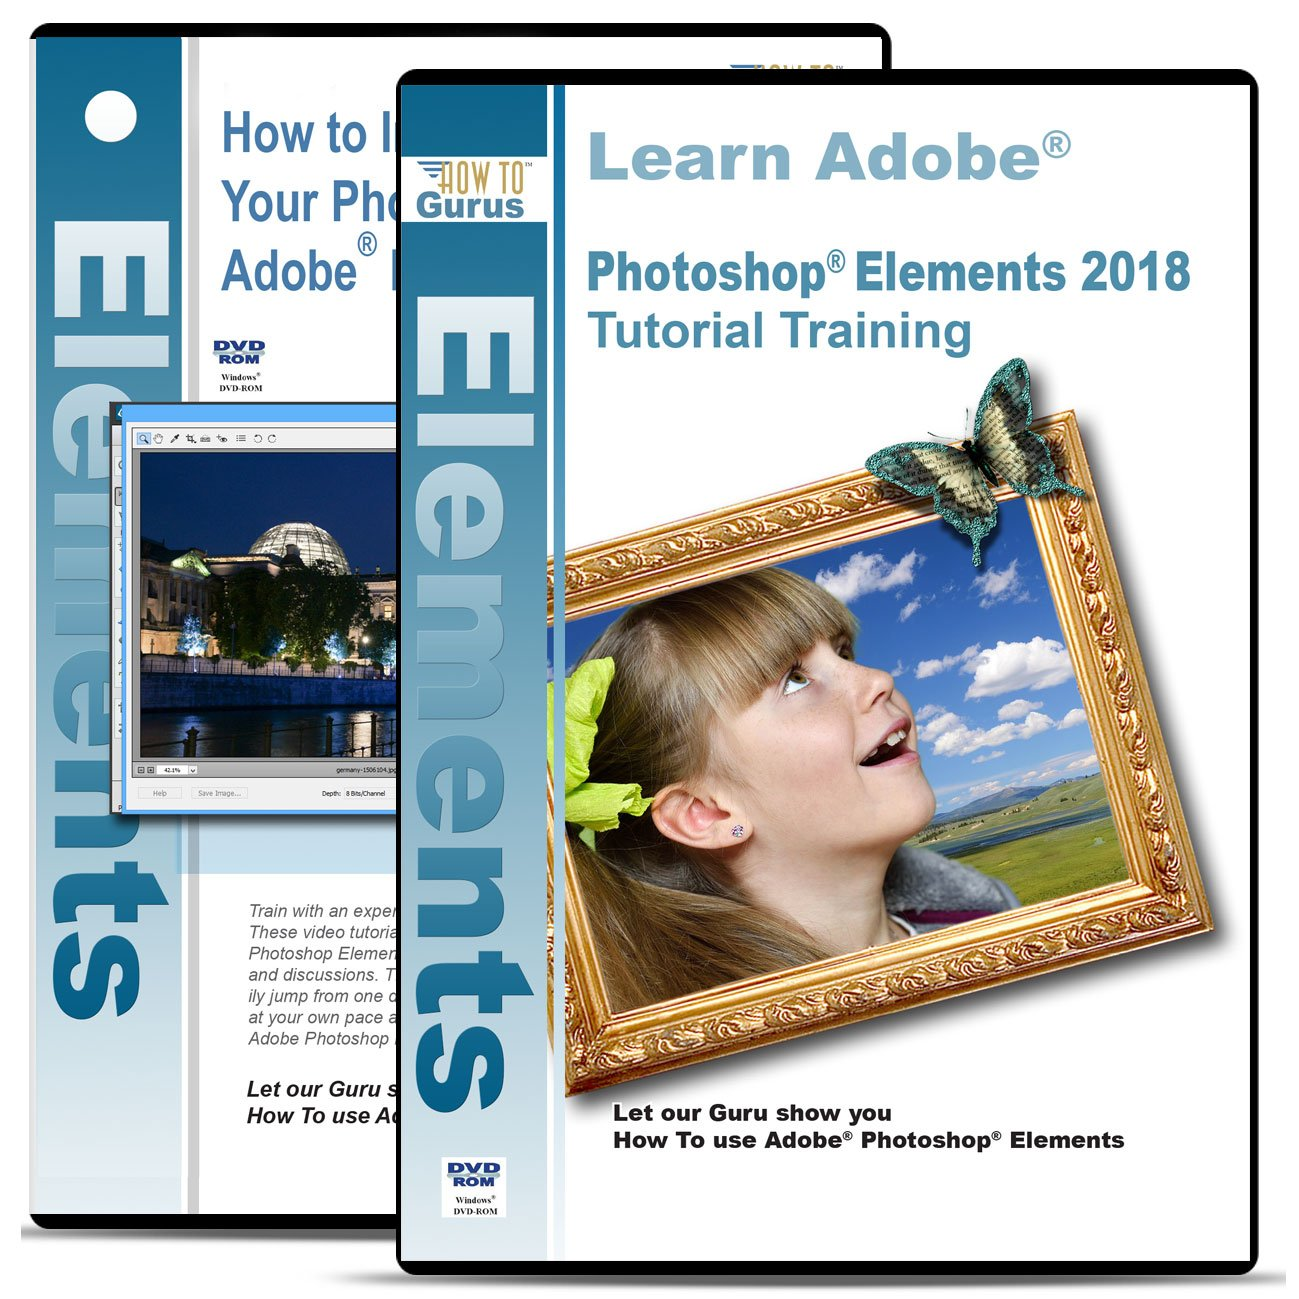 Amazon how to gurus adobe photoshop elements 2018 training on 3 dvds plus improve your photographs on 2 dvds disc baditri Images